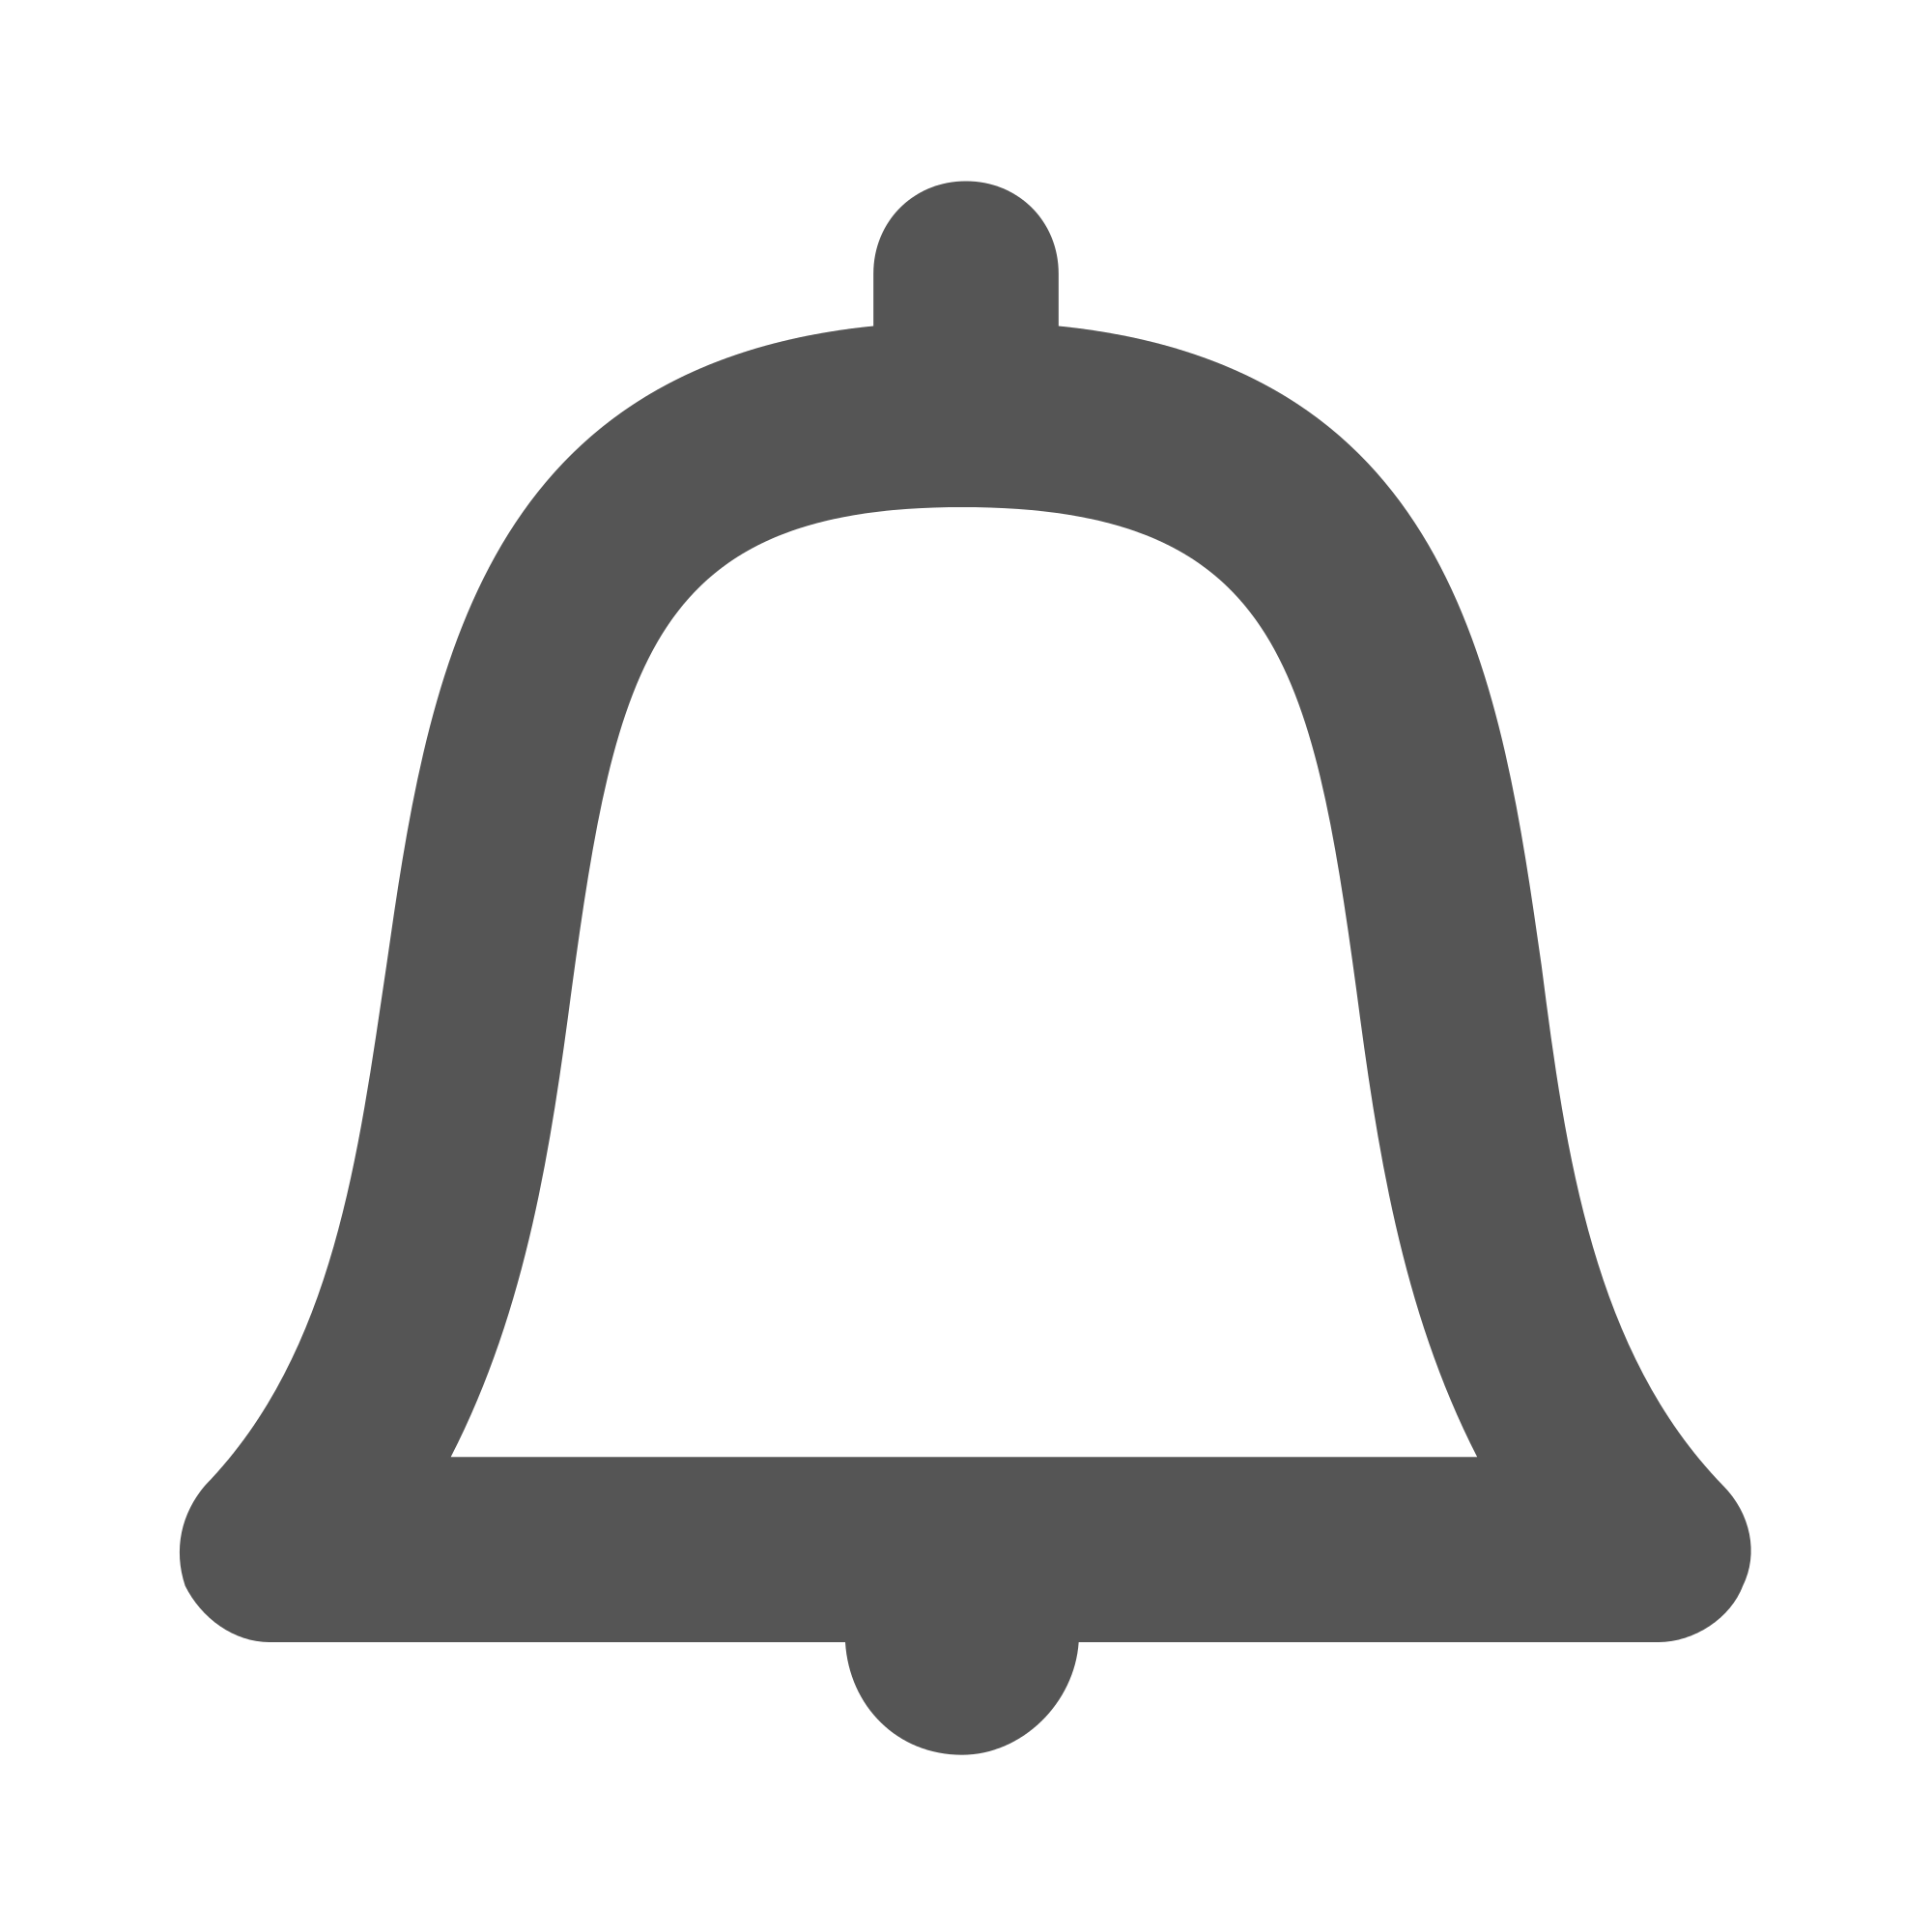 Bell svg notification. File echo wikimedia commons